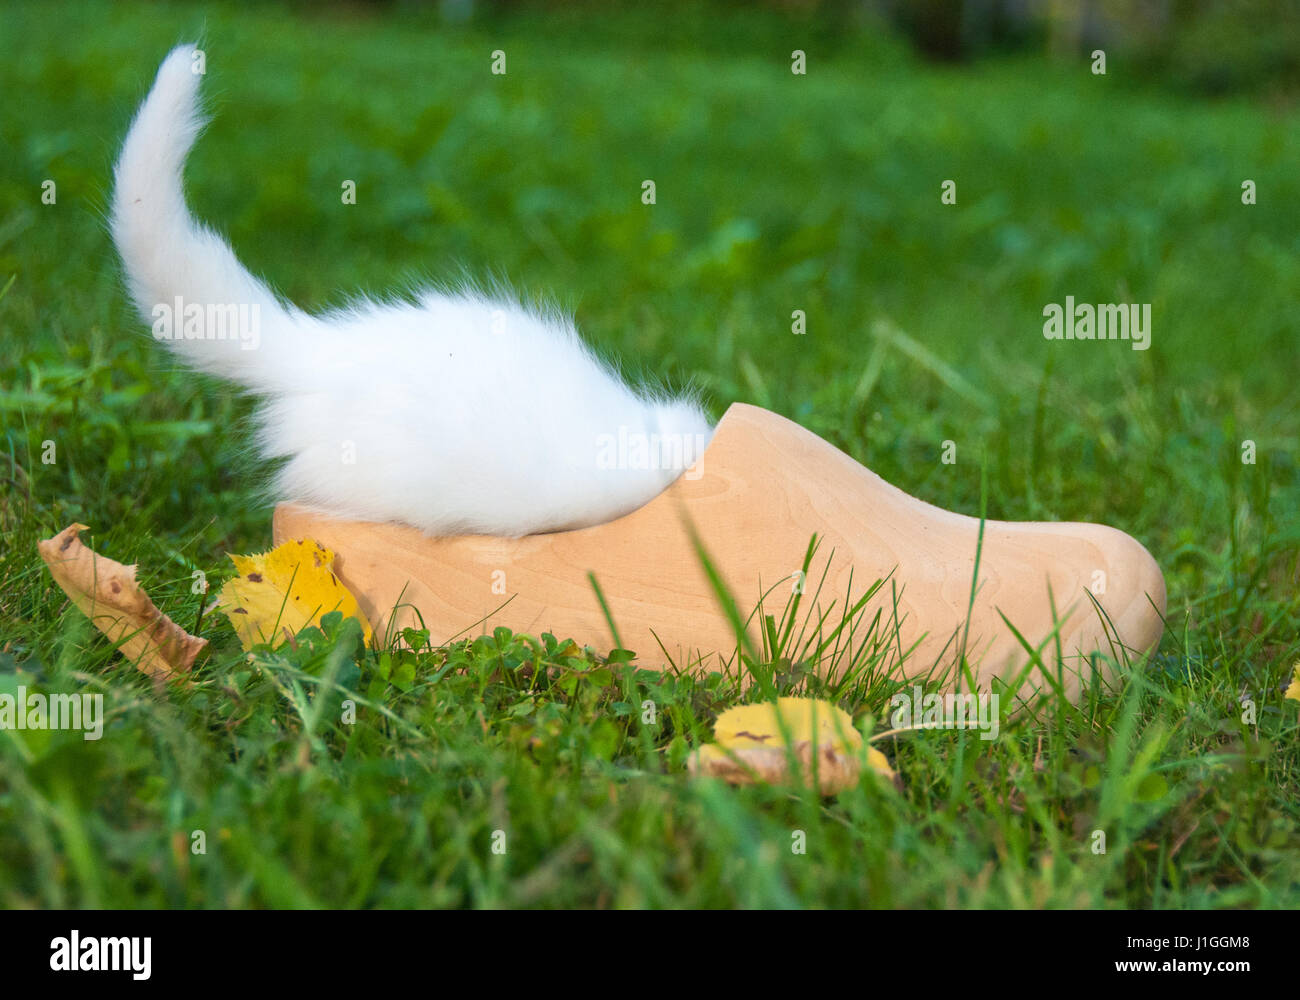 White little cat in a wooden shoe Stock Photo